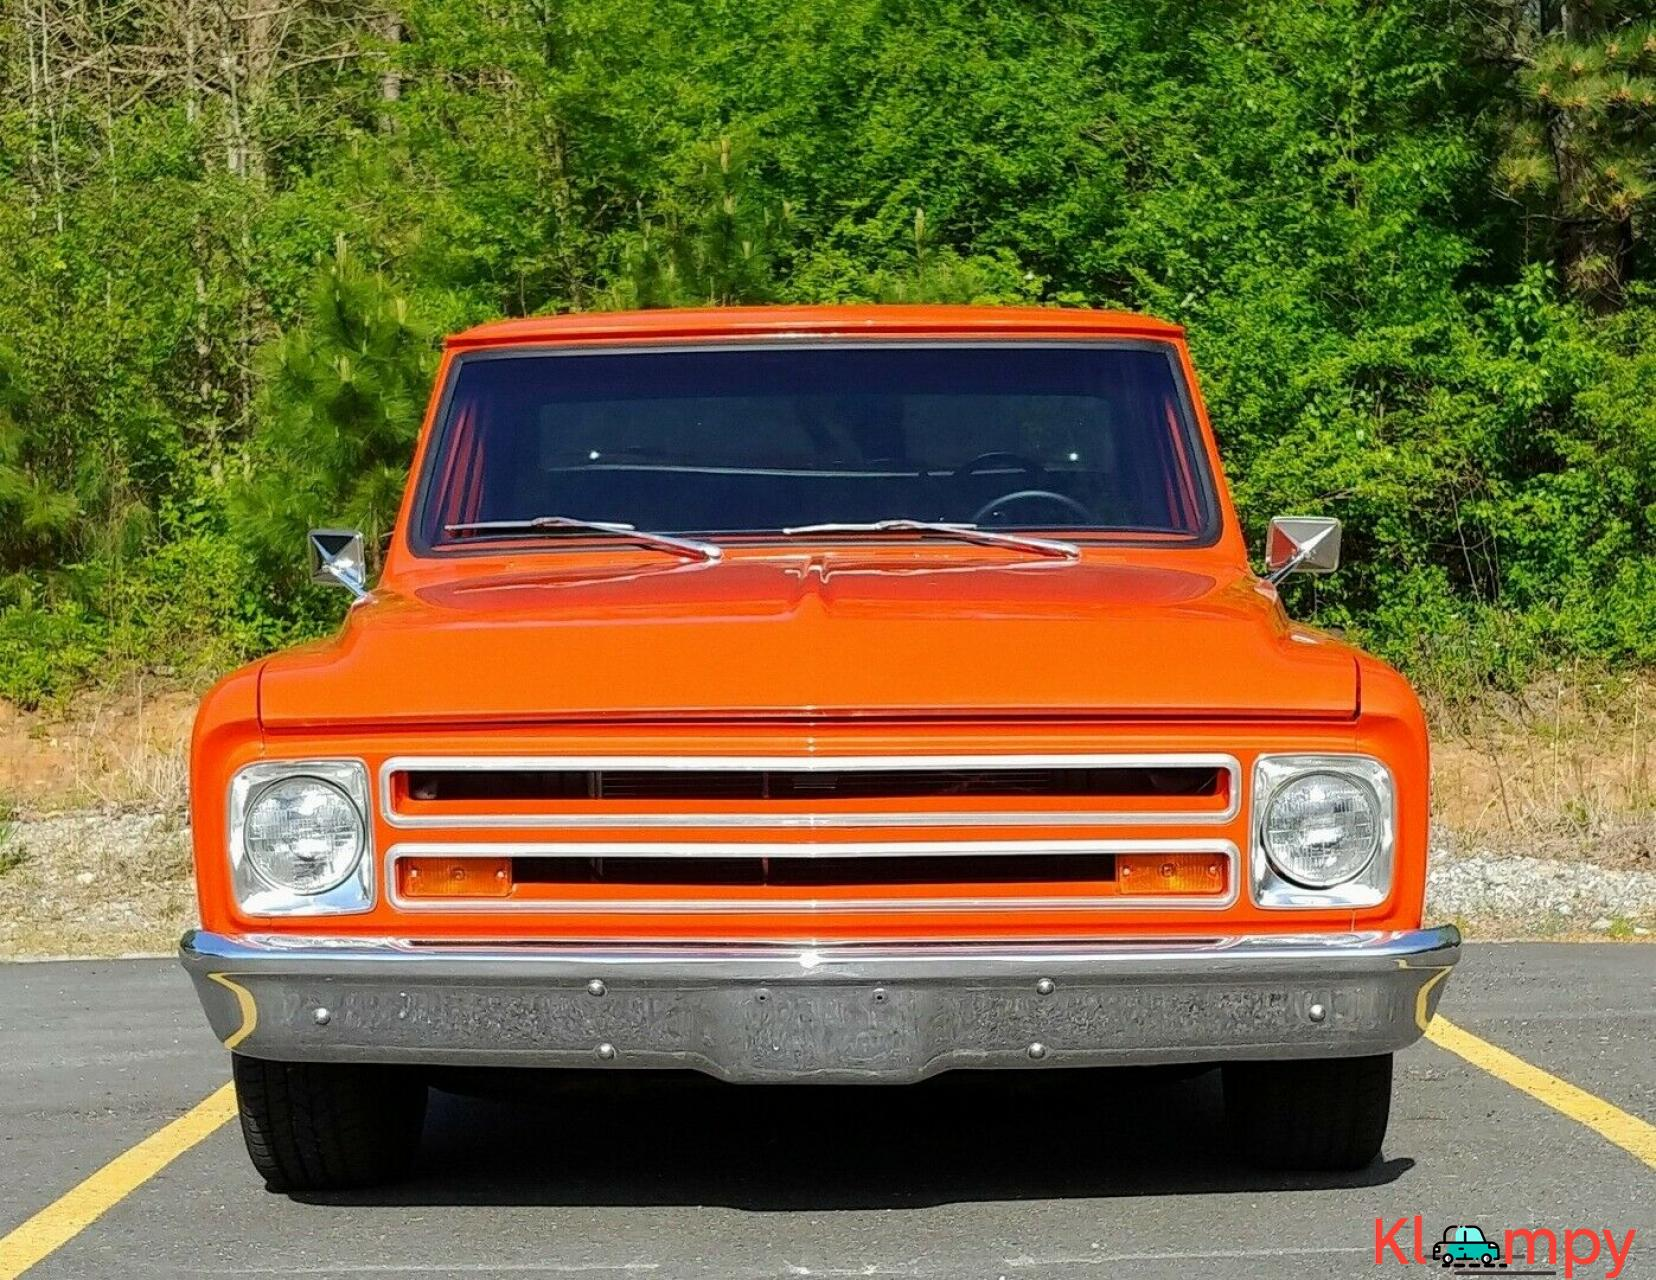 1968 Chevrolet Other Pickups C10 - 3/20